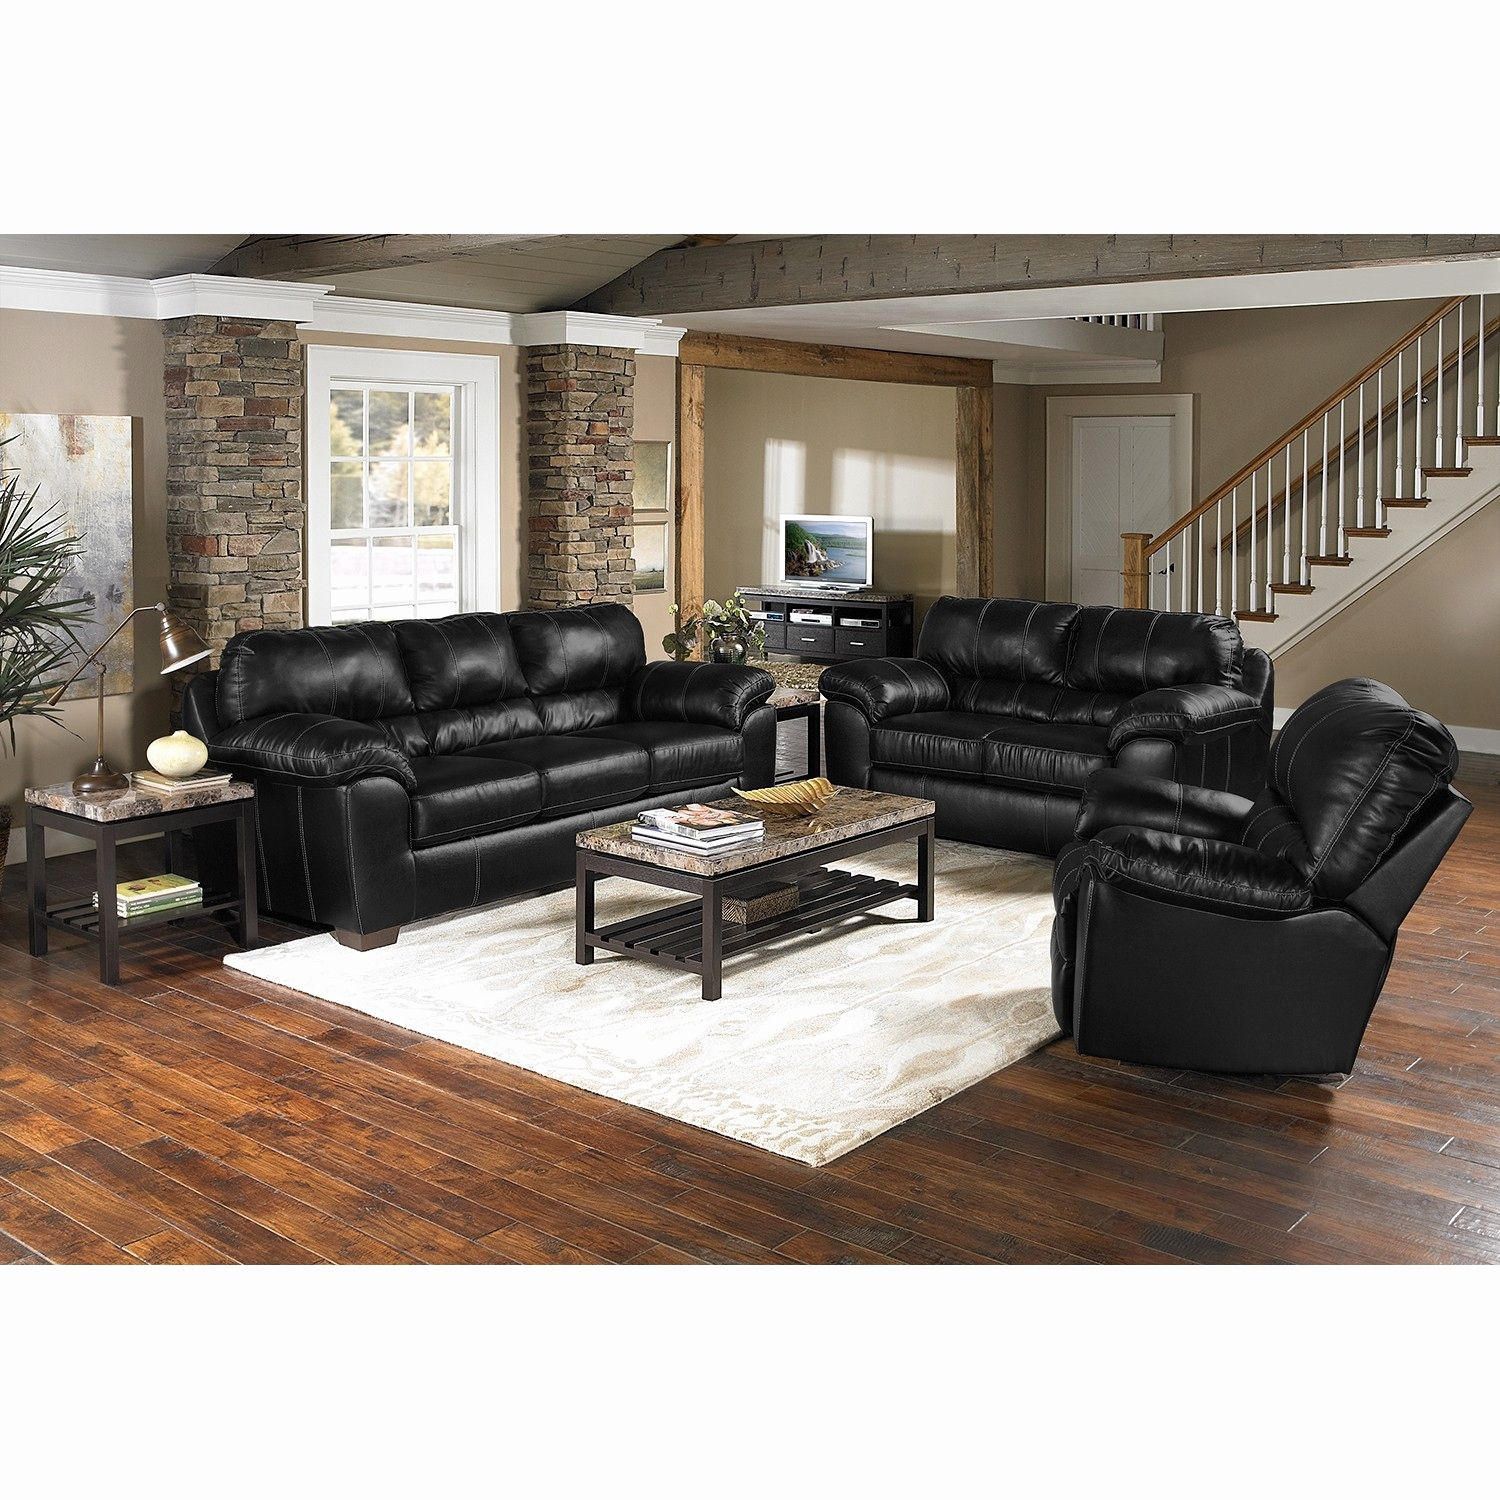 Luxury Best Leather Sofa Brands Graphics Living Room Living Room